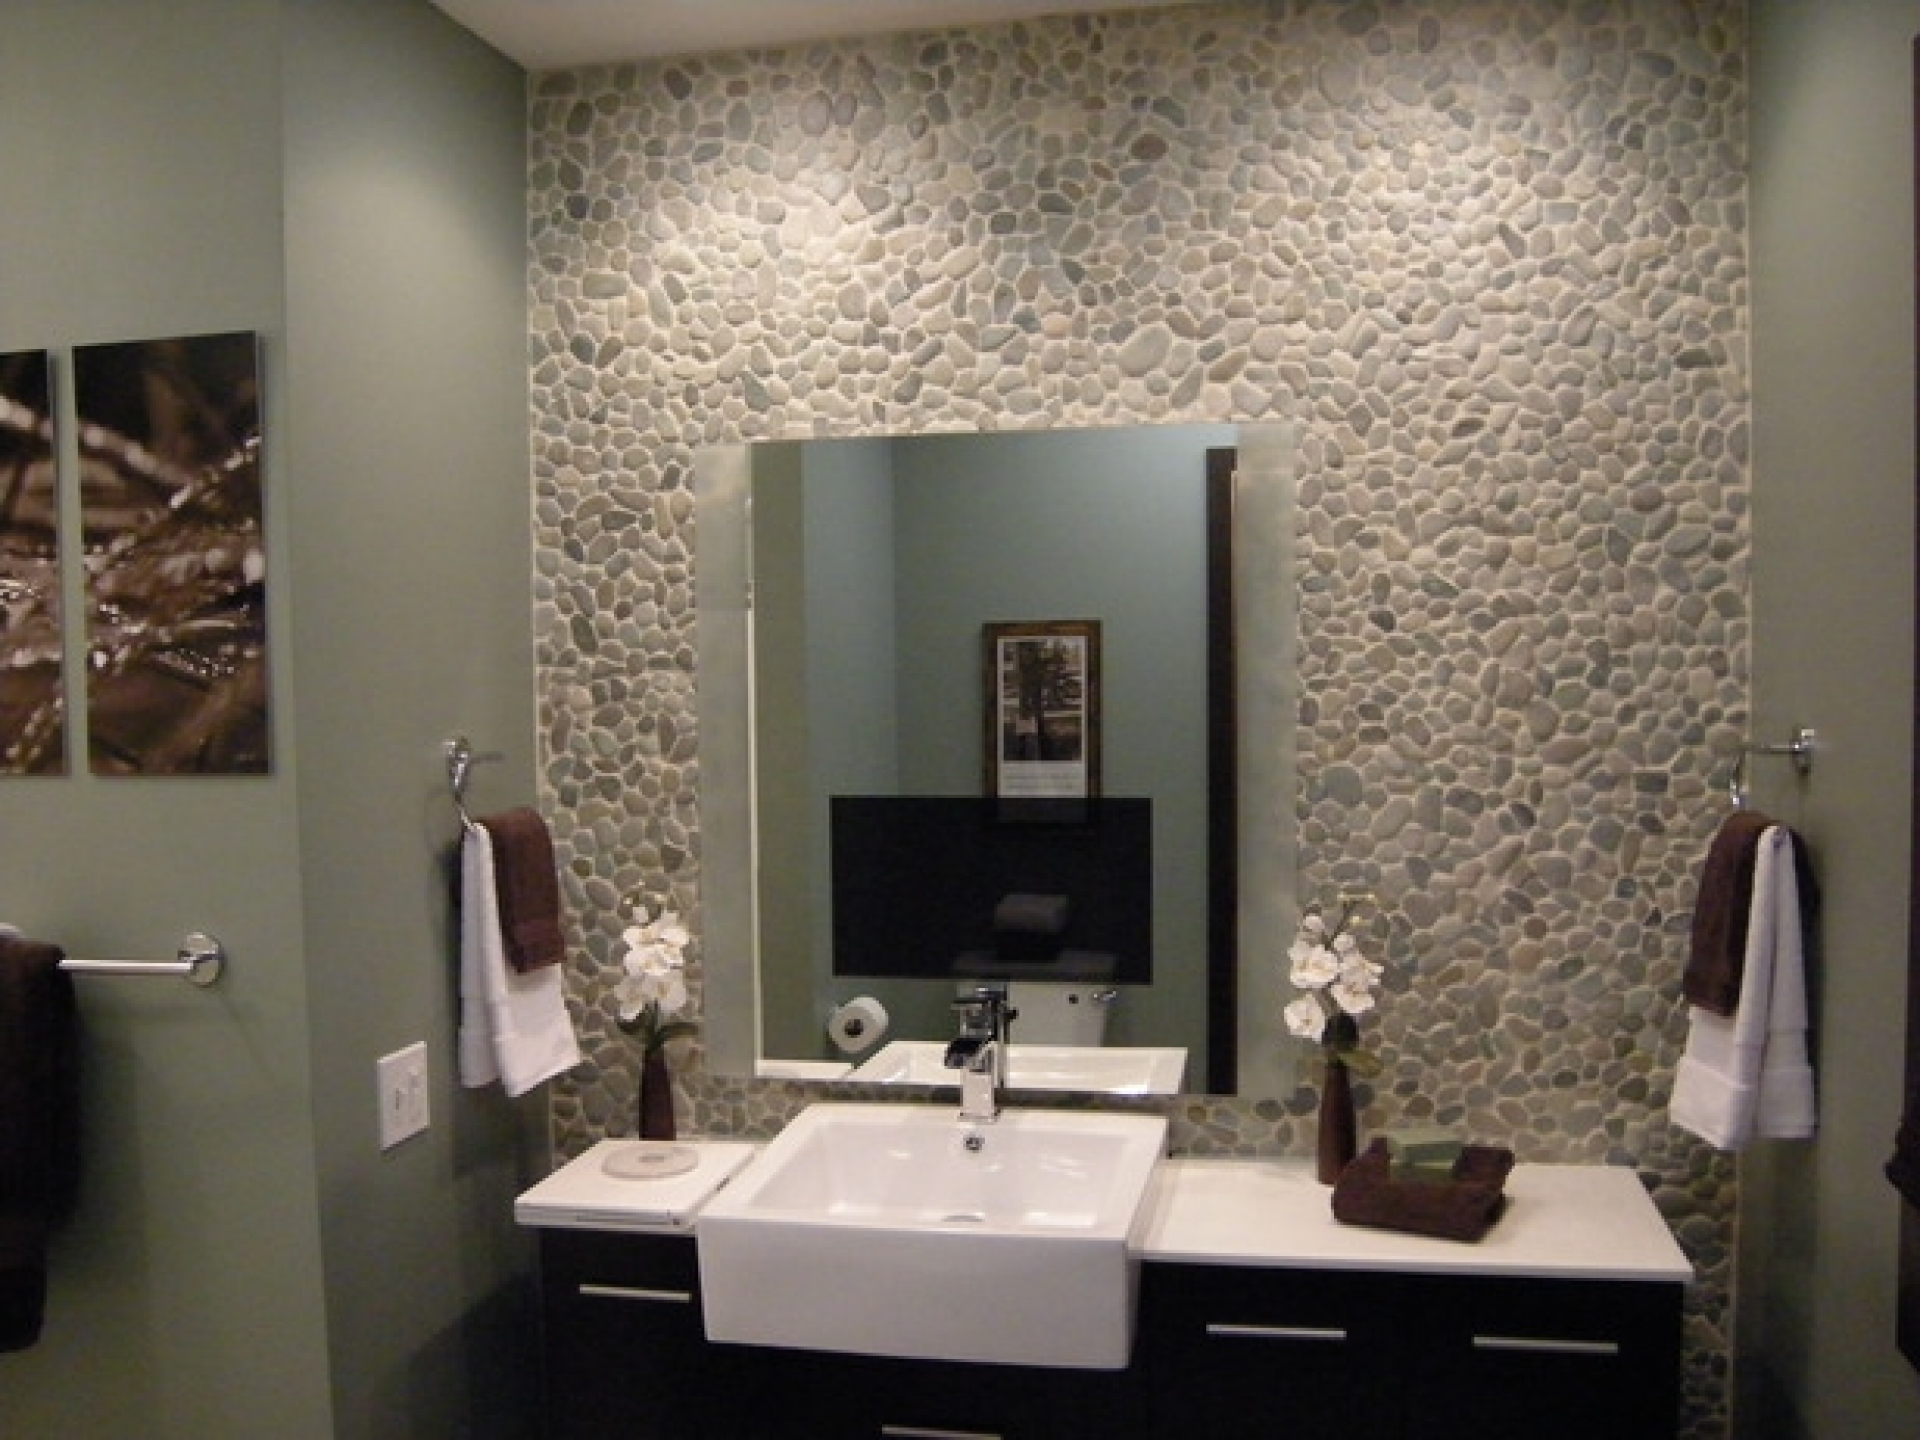 33 stunning pictures and ideas of natural stone bathroom for Small bathroom natural